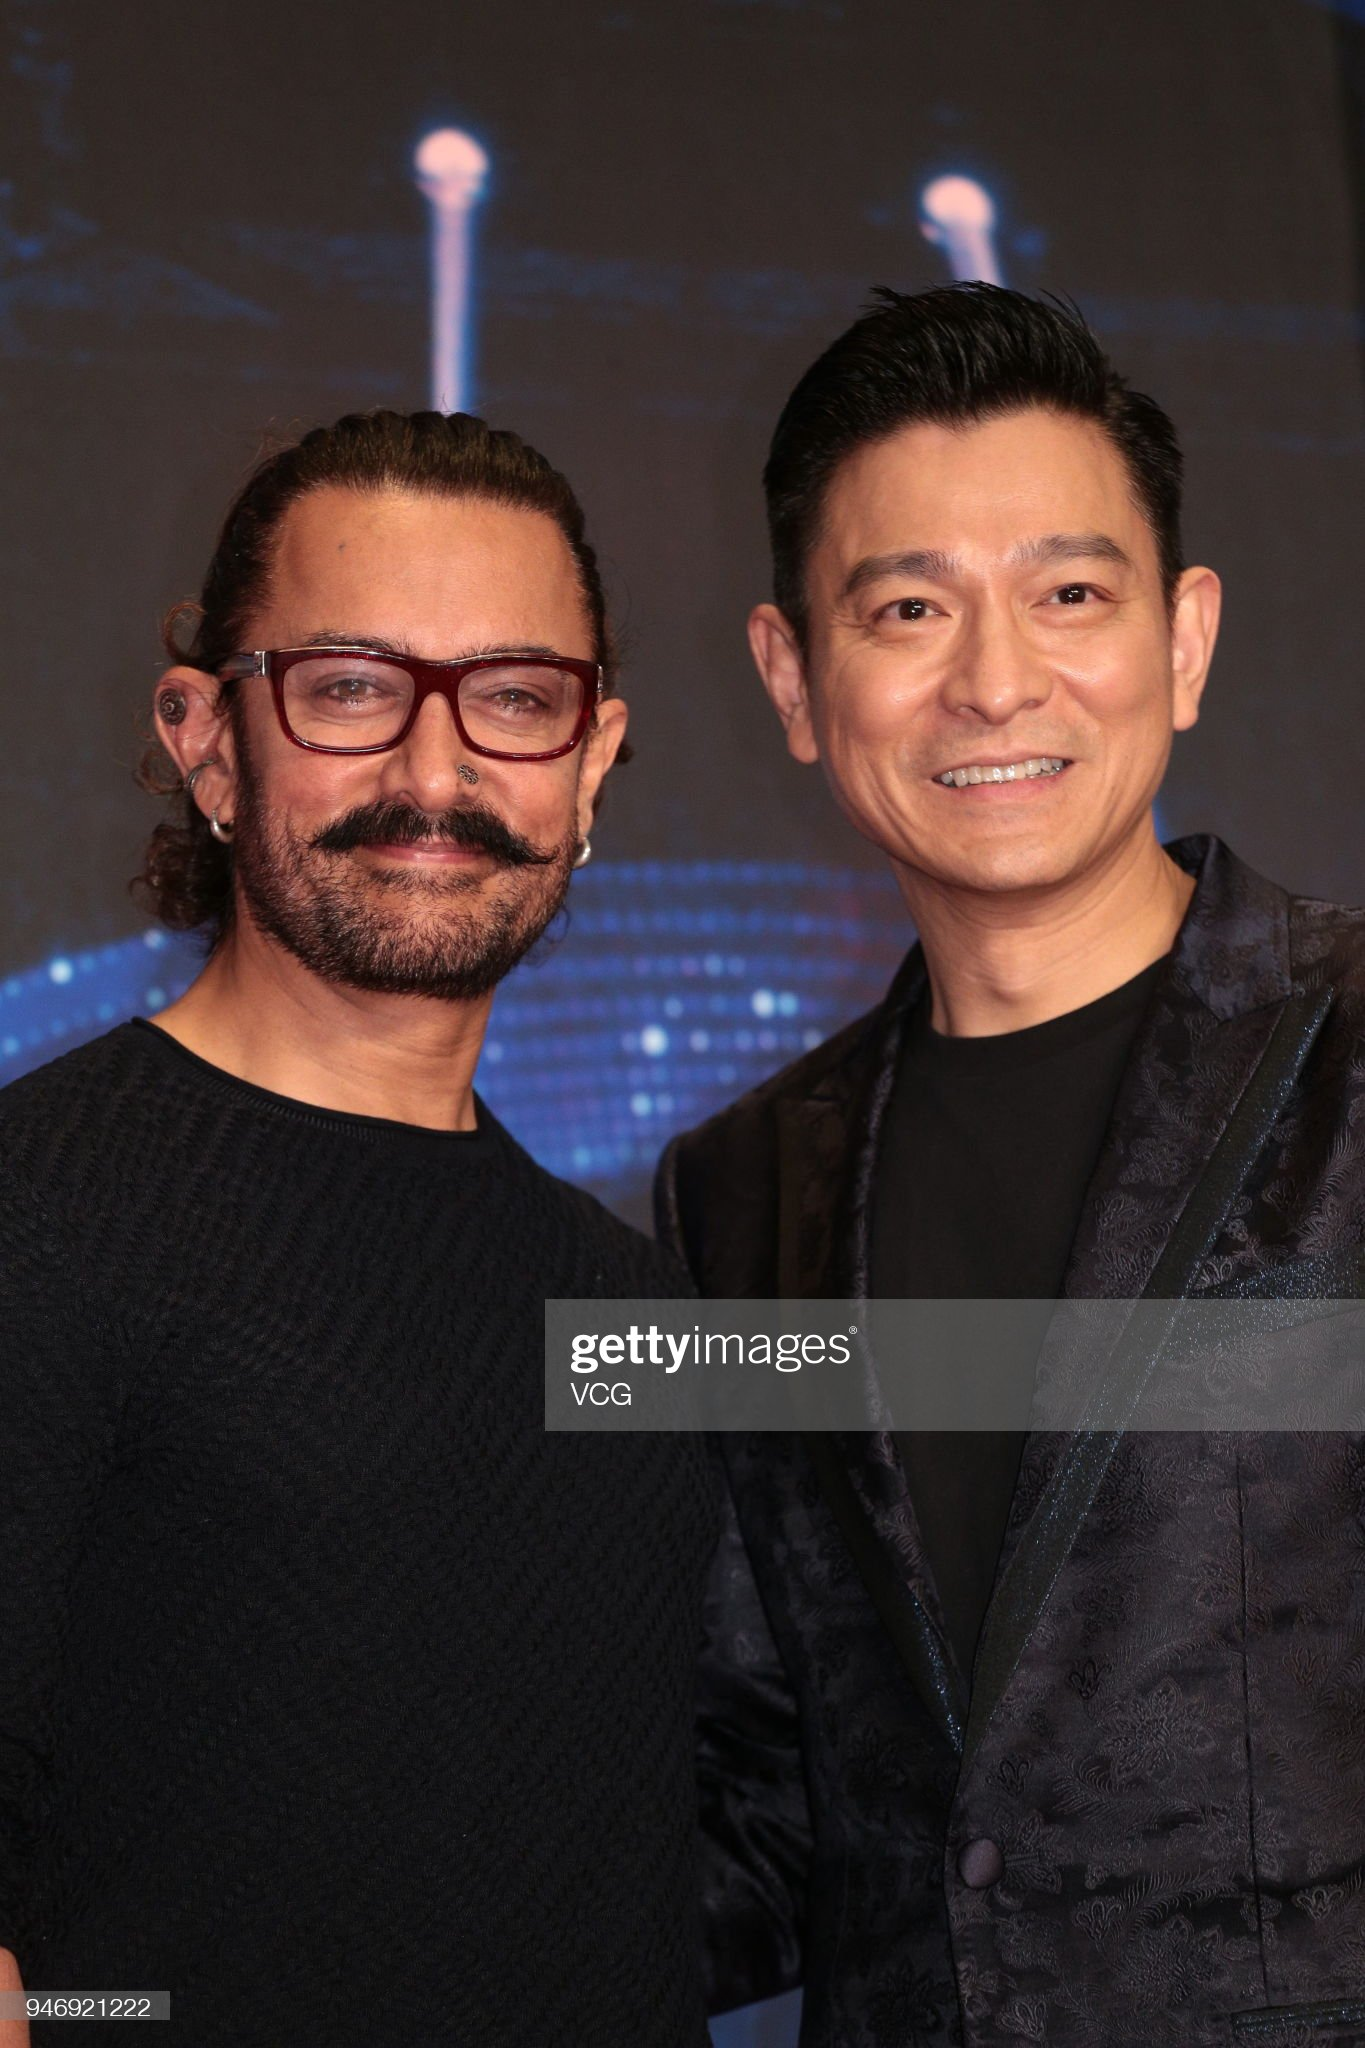 ¿Cuánto mide Aamir Khan? - Real height Actor-andy-lau-and-actor-aamir-khan-attend-secret-superstar-press-on-picture-id946921222?s=2048x2048